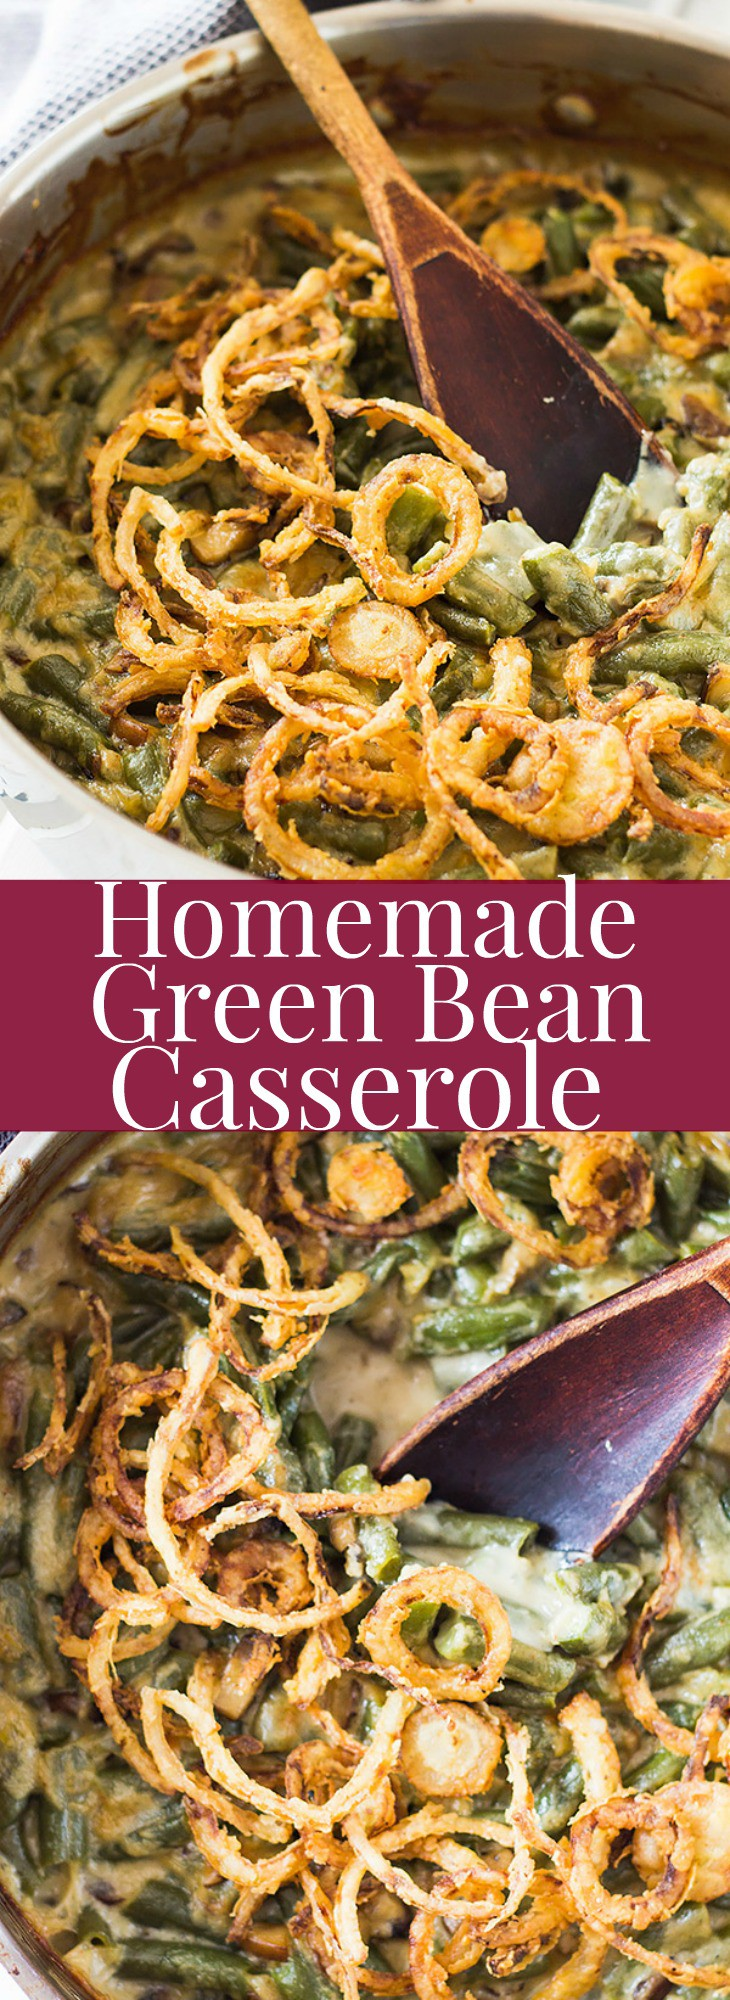 A Homemade Green Bean Casserole that is creamy, full of flavor, and topped with a crispy onion topping! | www.countrysidecravings.com